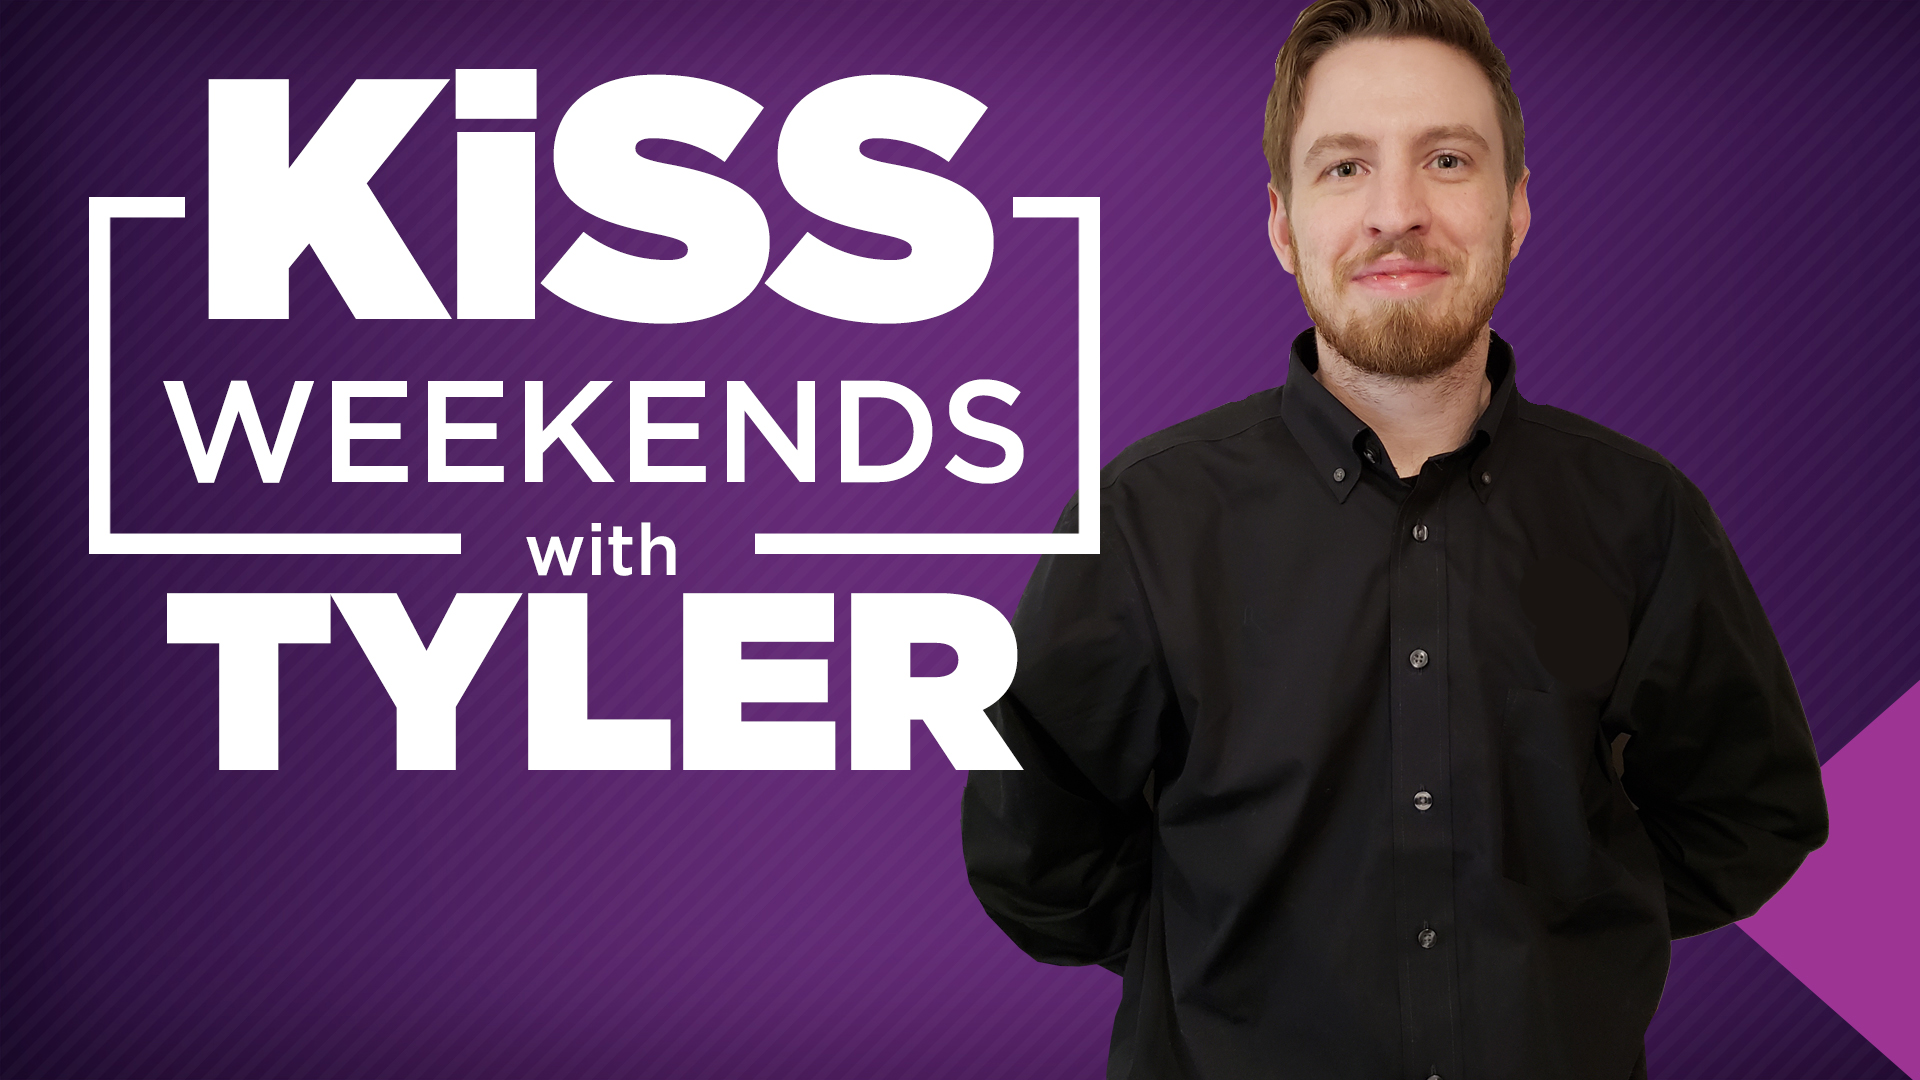 Kiss tyler weekends